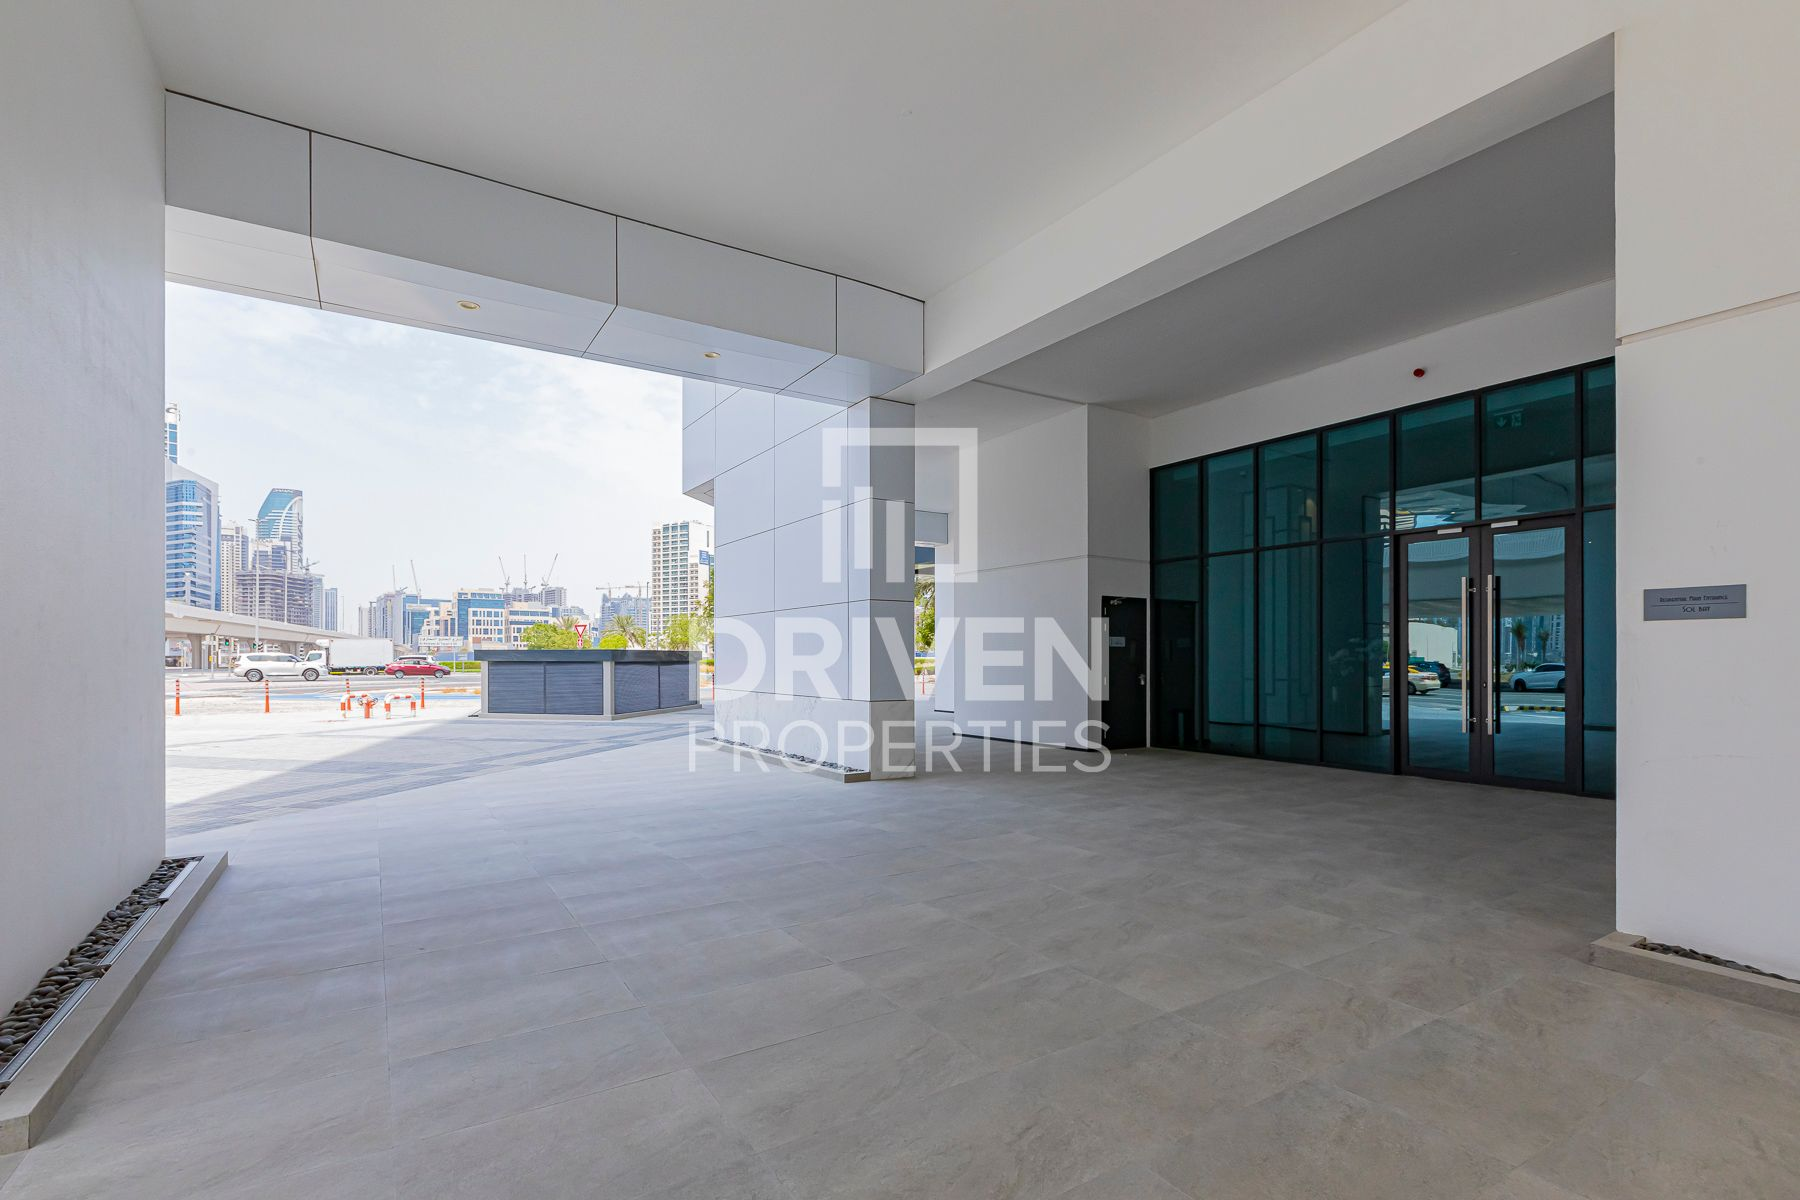 Retail for Rent in SOL Bay - Business Bay